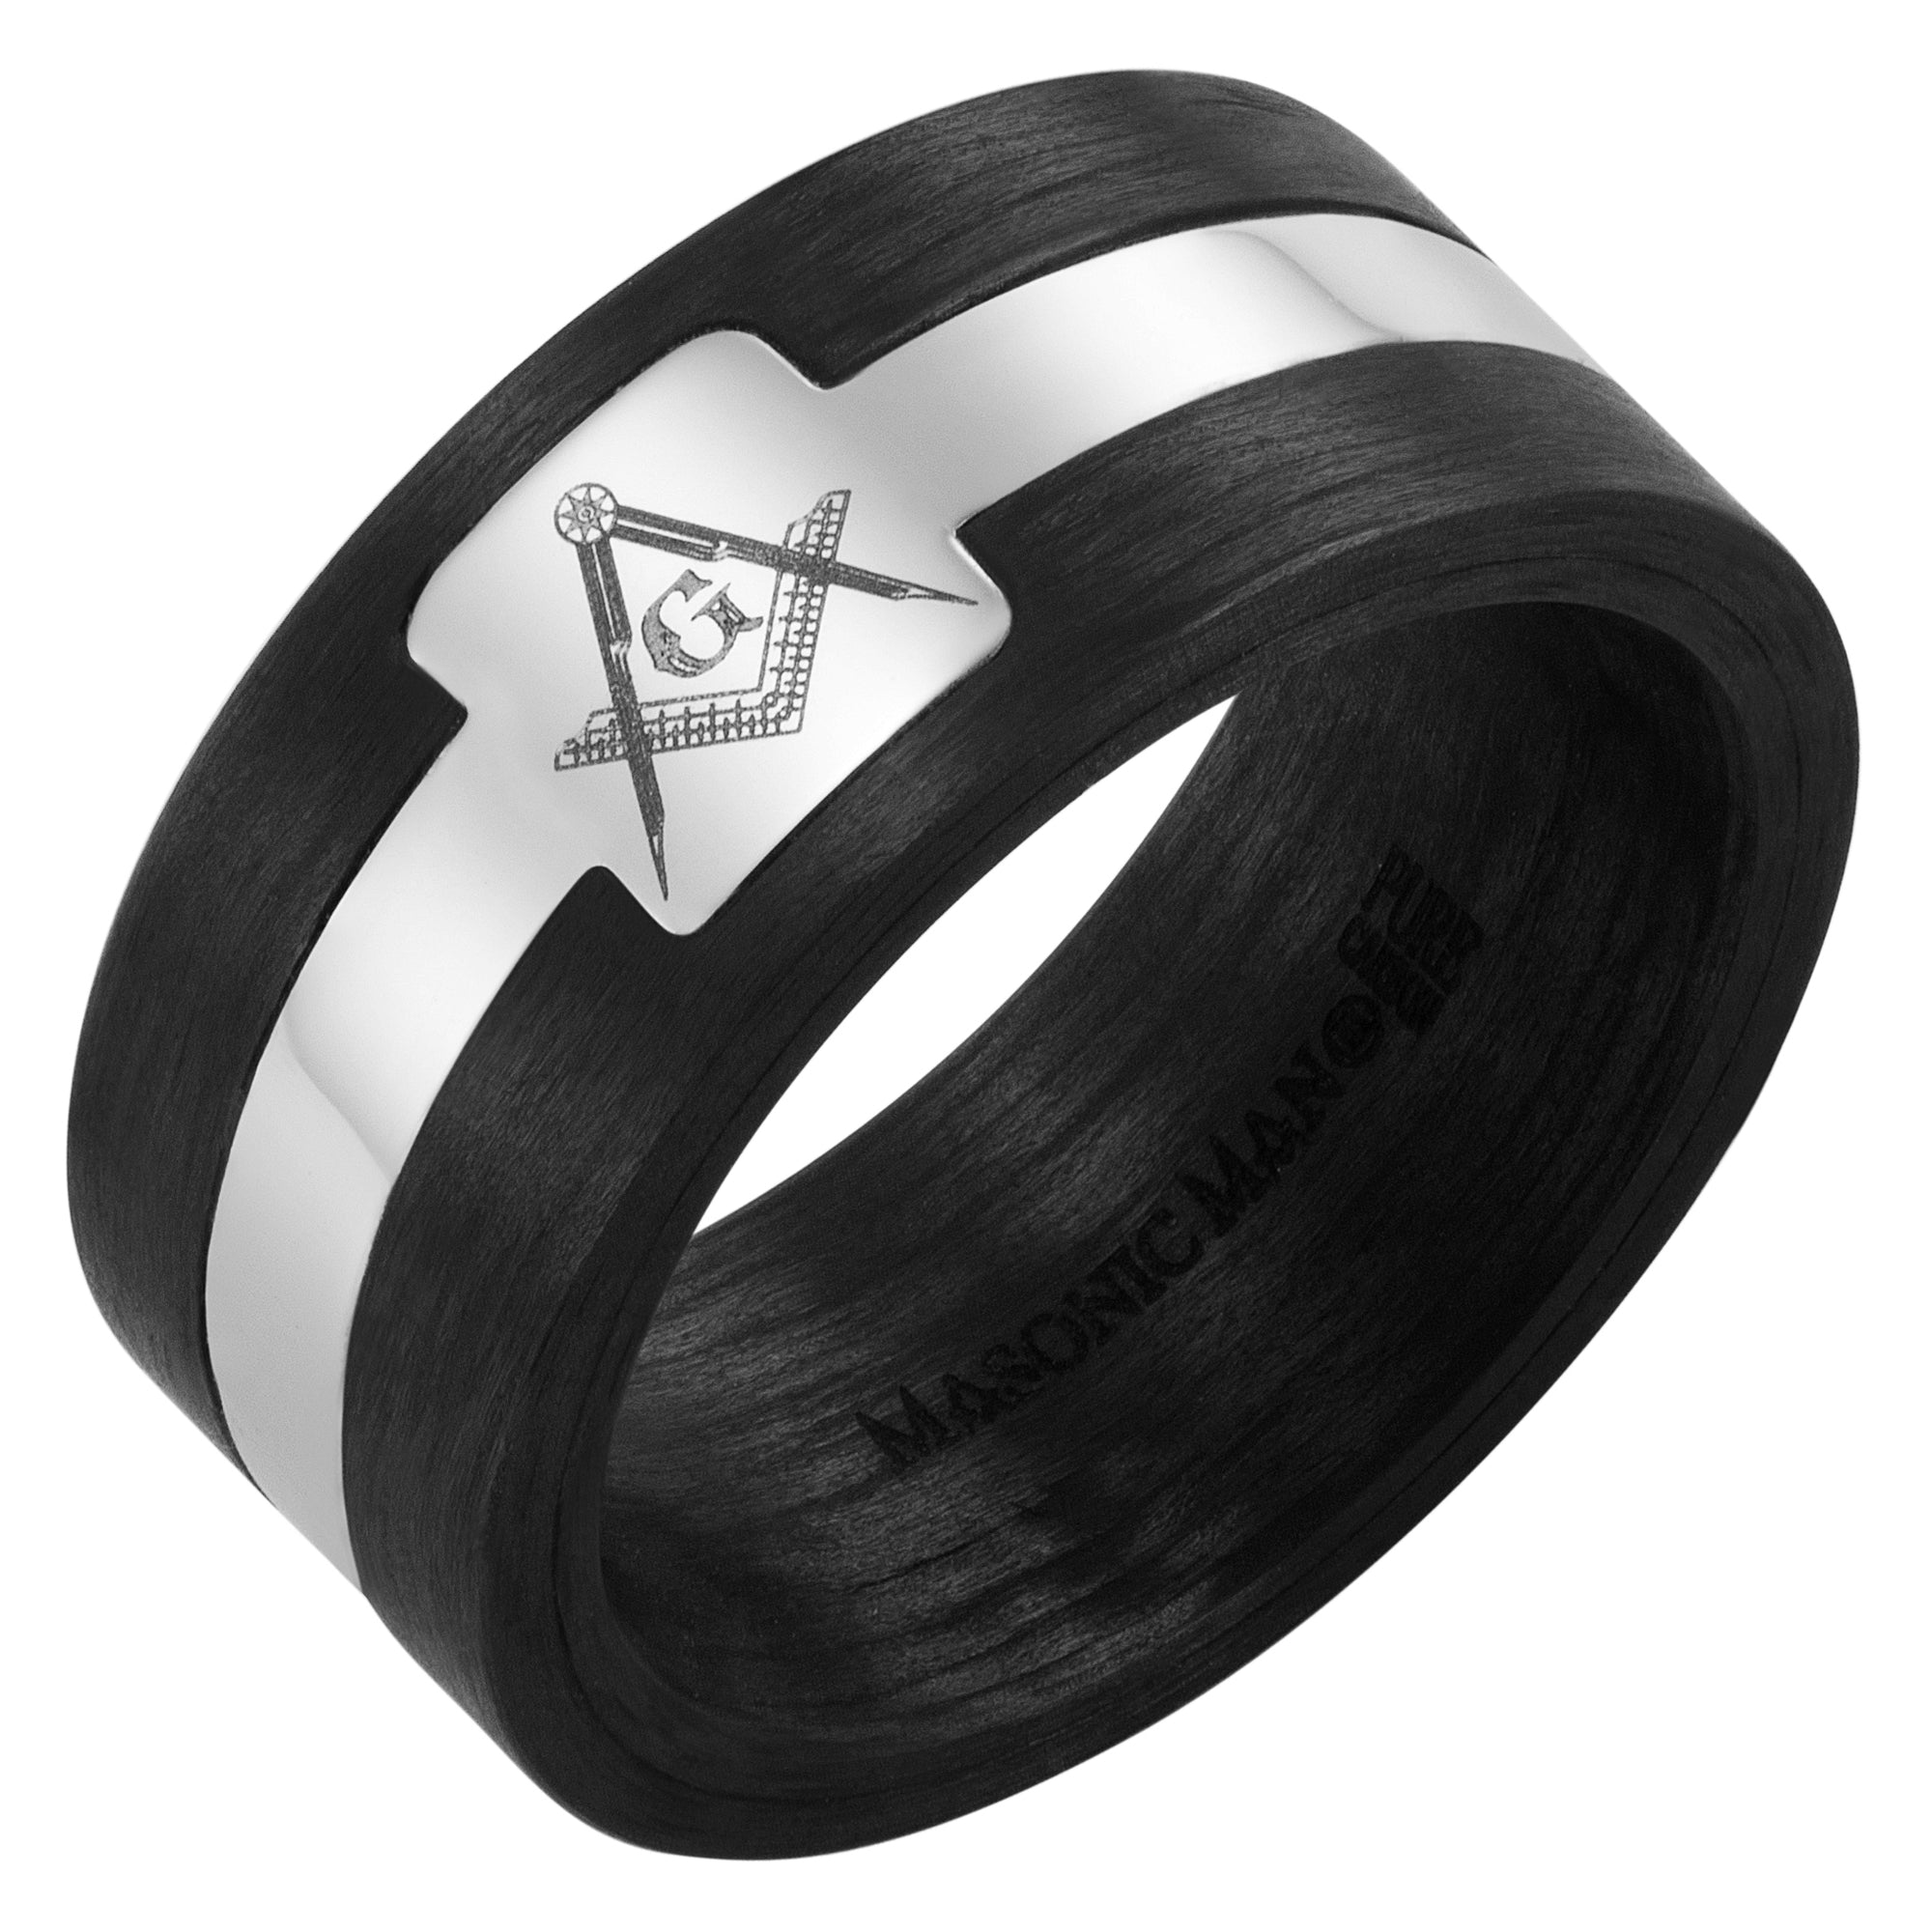 Pure Carbon Fiber 10mm Ring with Masonic Square and Compass